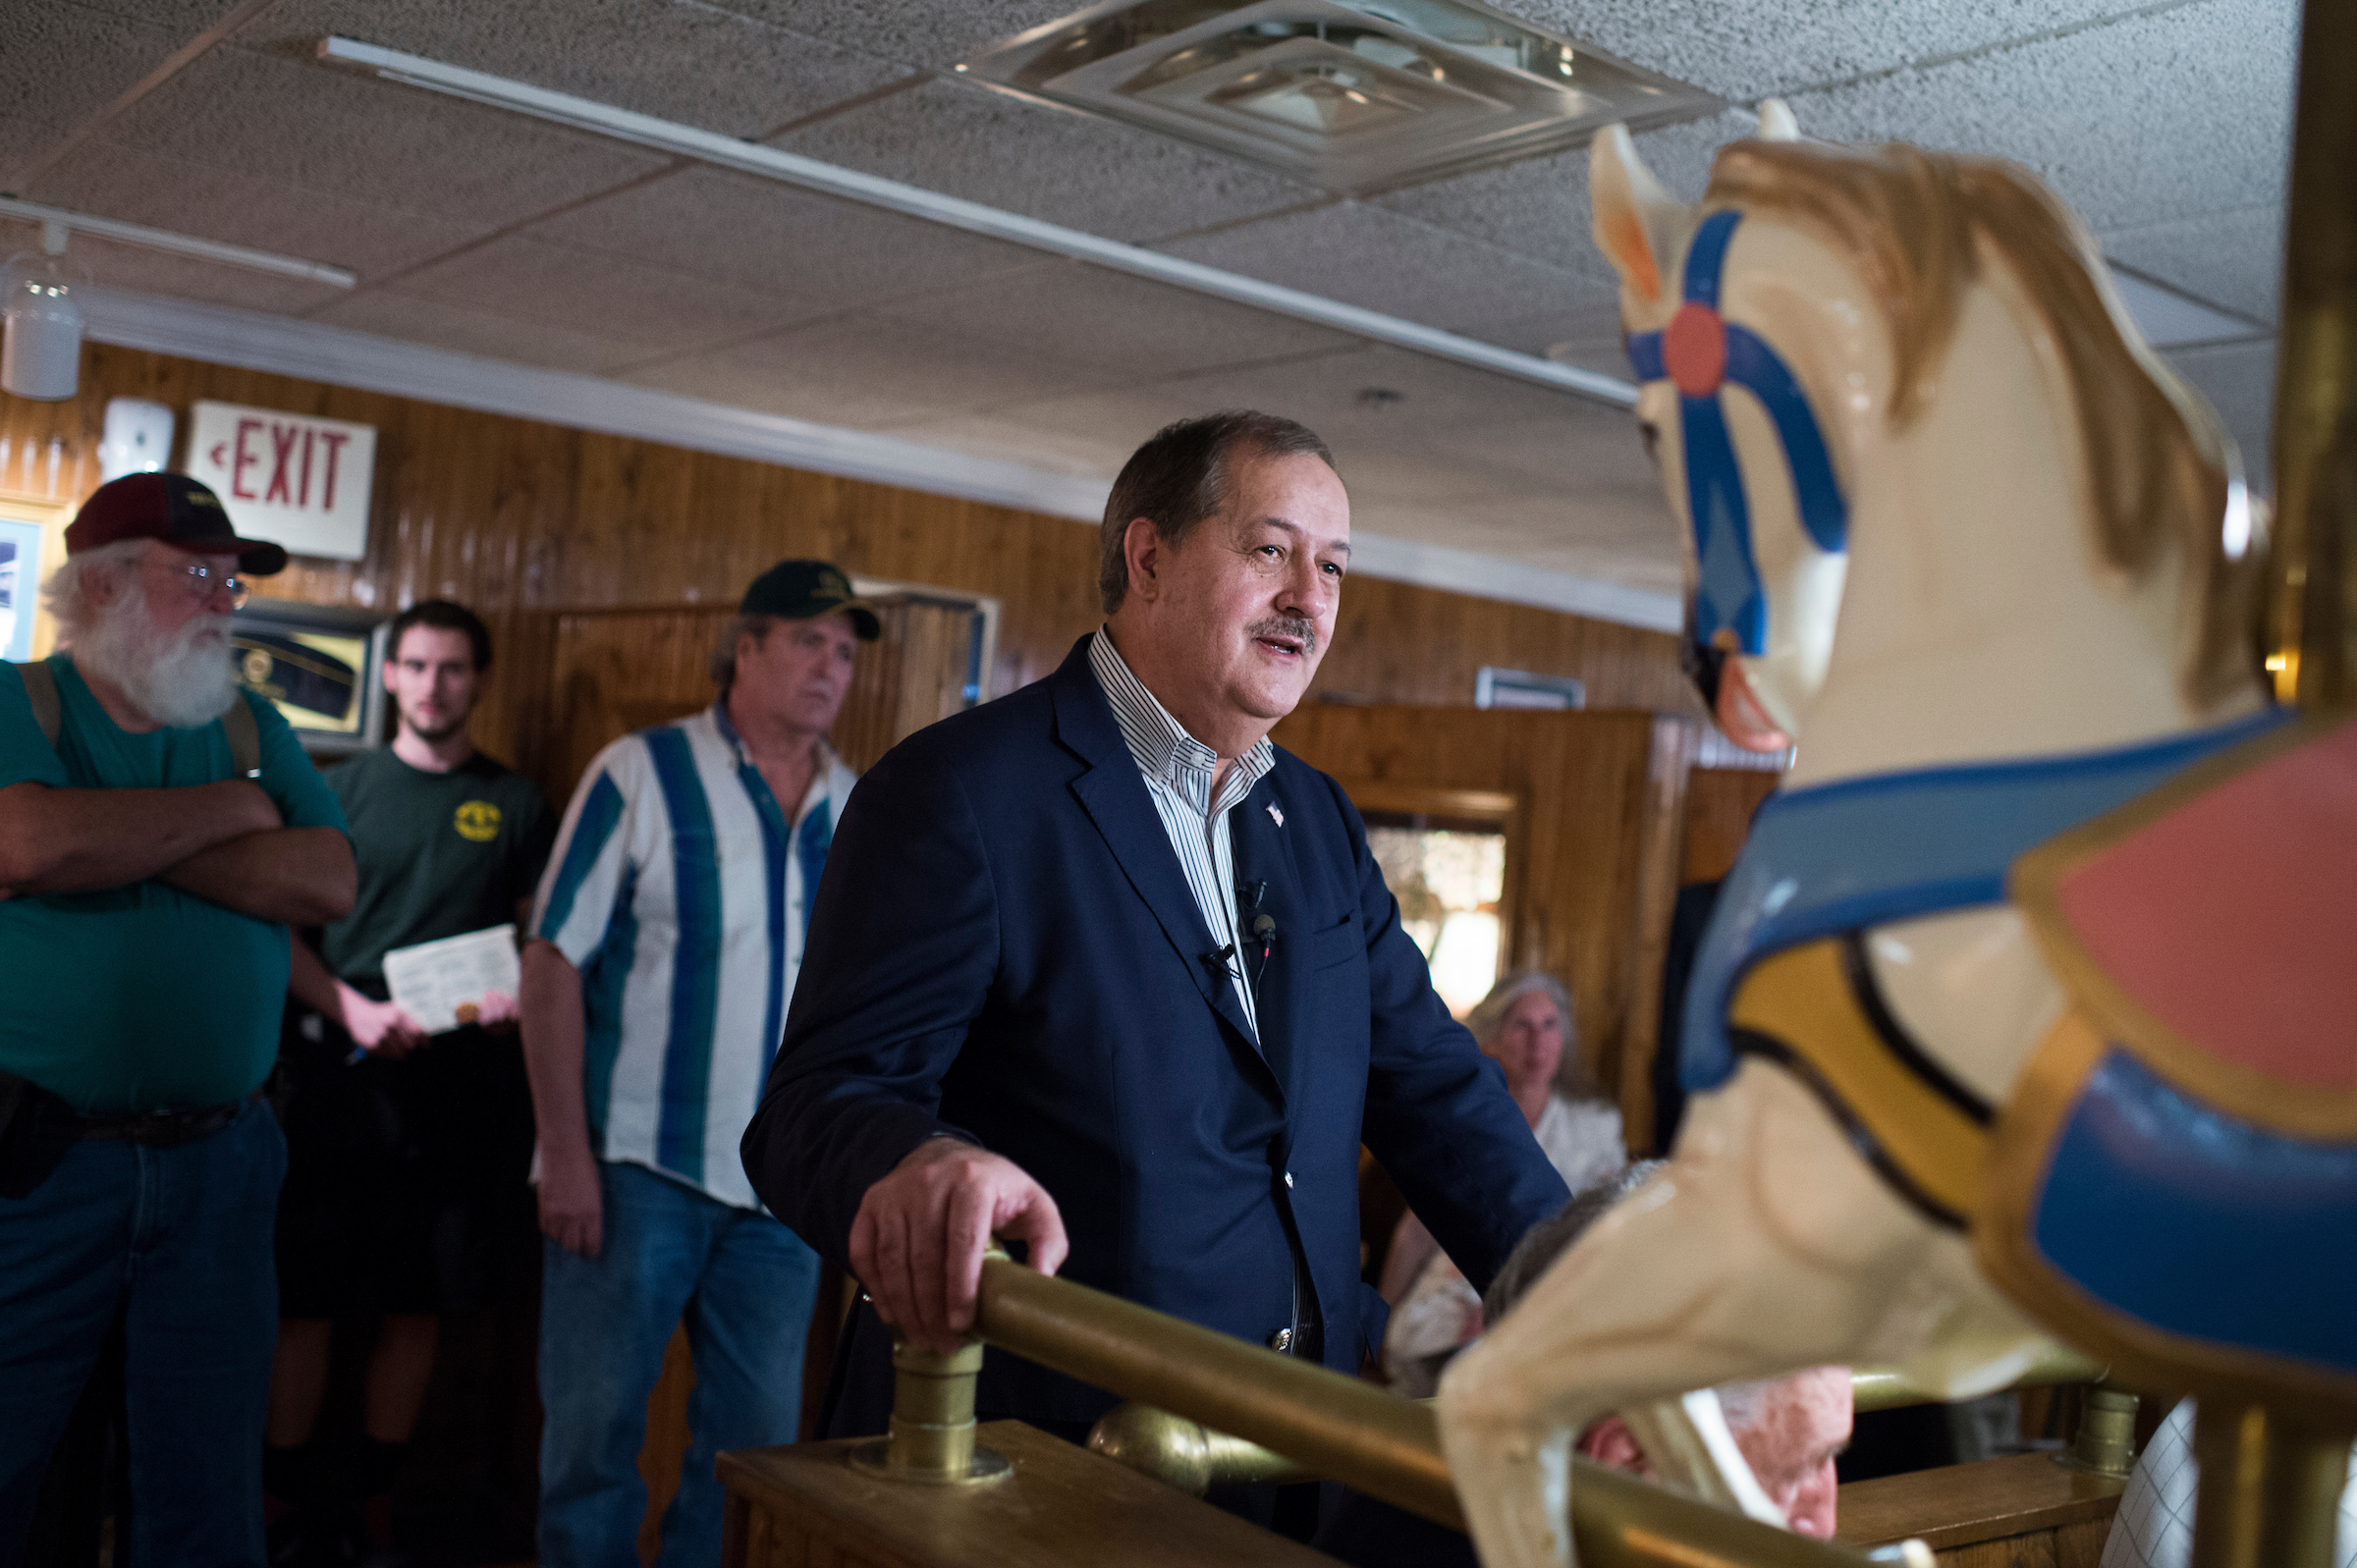 UNITED STATES - MAY 3: Don Blankenship, who is running for the Republican nomination for Senate in West Virginia, conducts a town hall meeting at Macado's restaurant in Bluefield, W.Va., on May 3, 2018. (Photo By Tom Williams/CQ Roll Call)